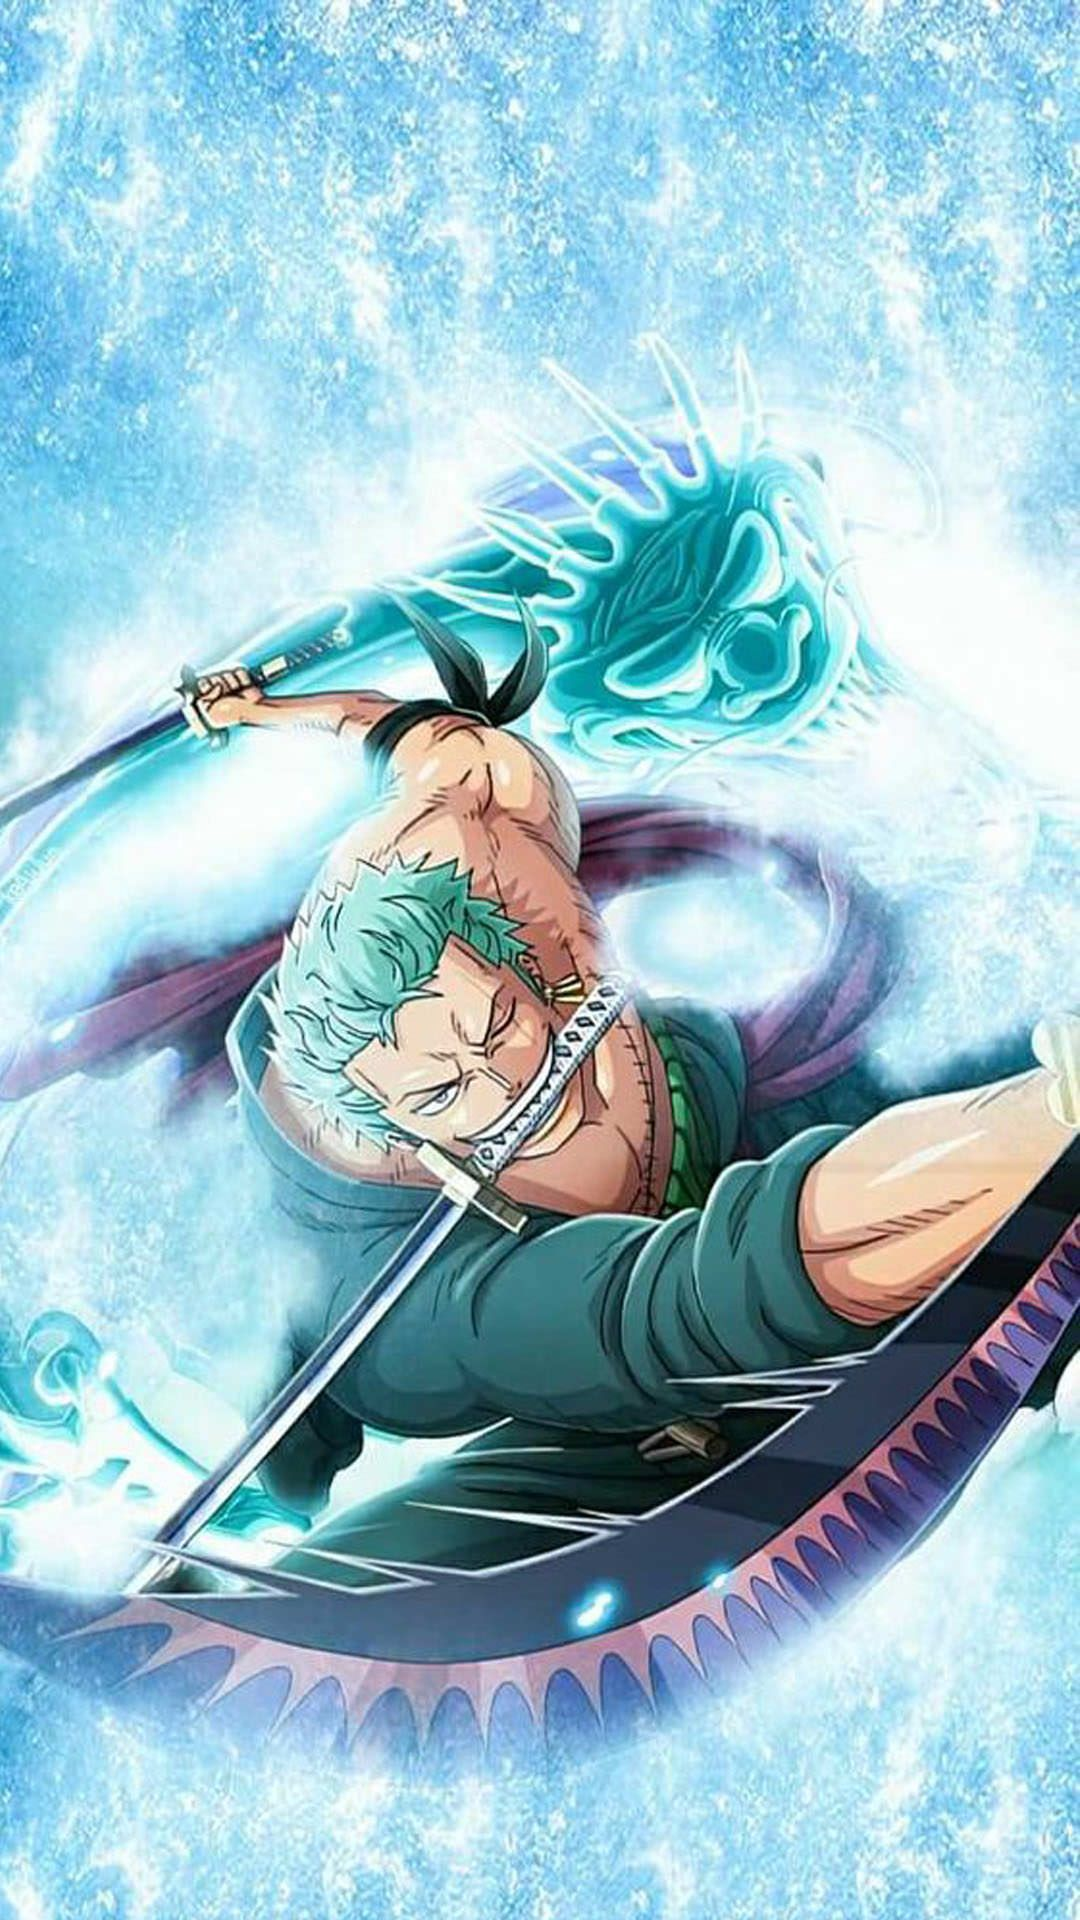 One Piece Wallpaper Mobile In 2020 Anime Blue Anime One Piece